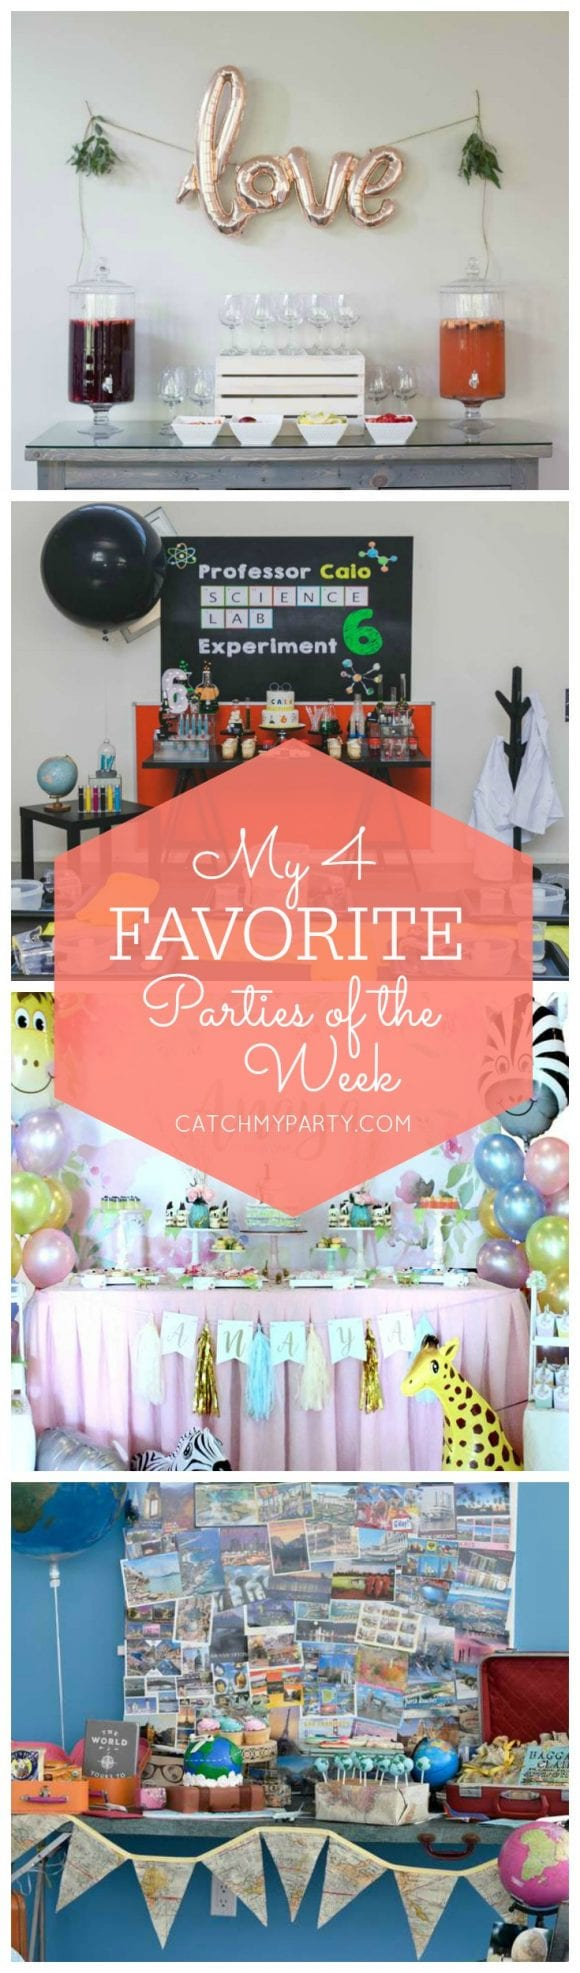 My favorite parties this week include a Love themed bridal shower, a Mad scientist birthday party, a Safari birthday party and a World Traveler birthday party! | Catchmyparty.com